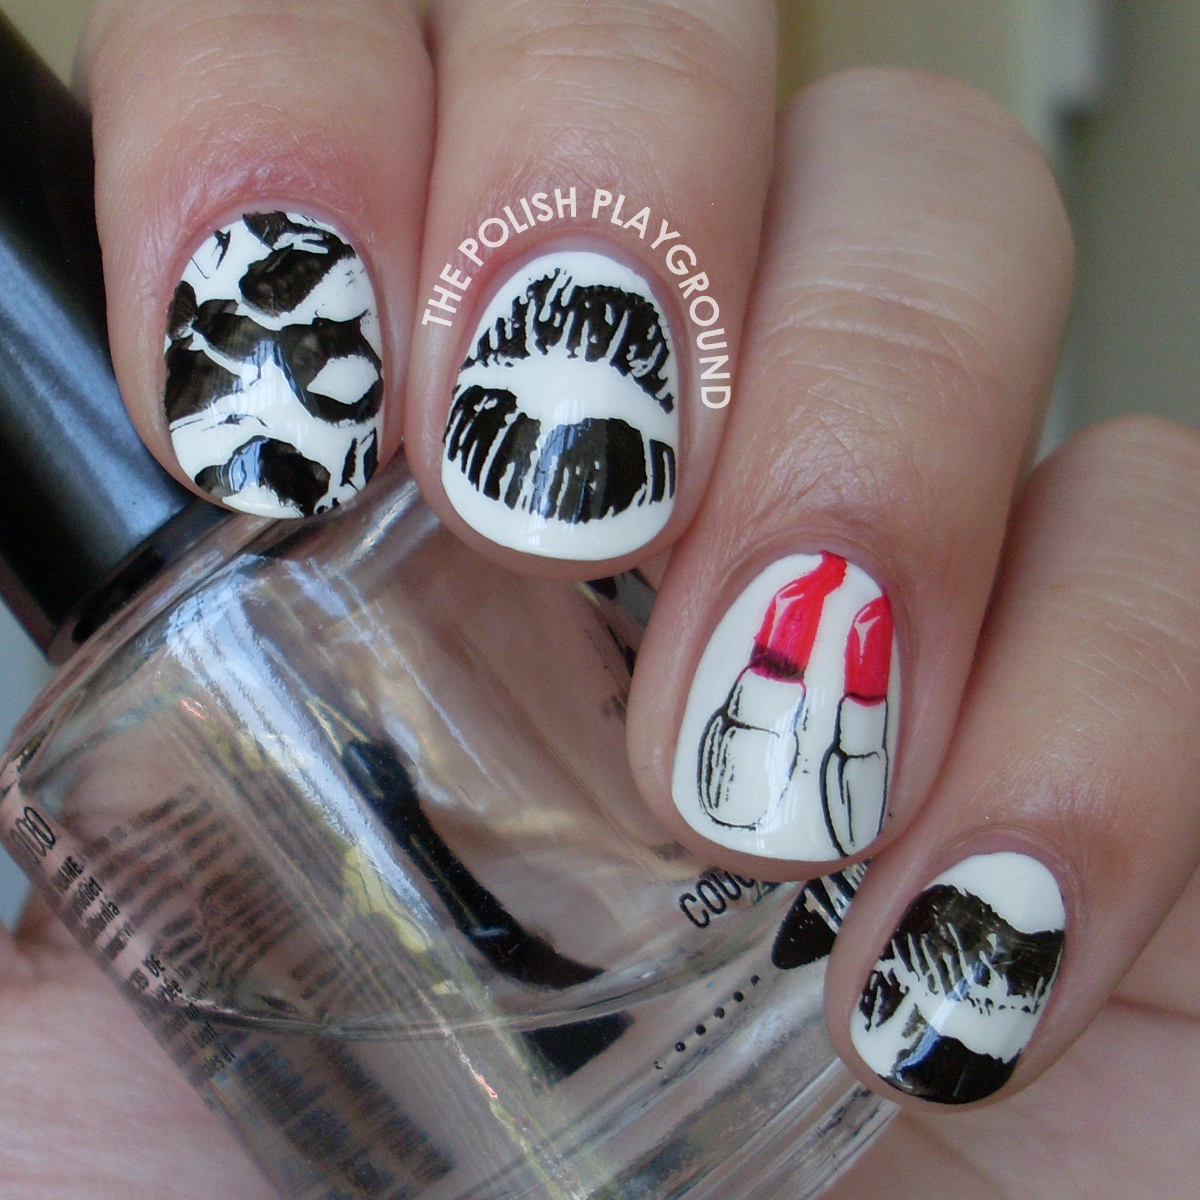 Lipstick Kisses Stamping Nail Art